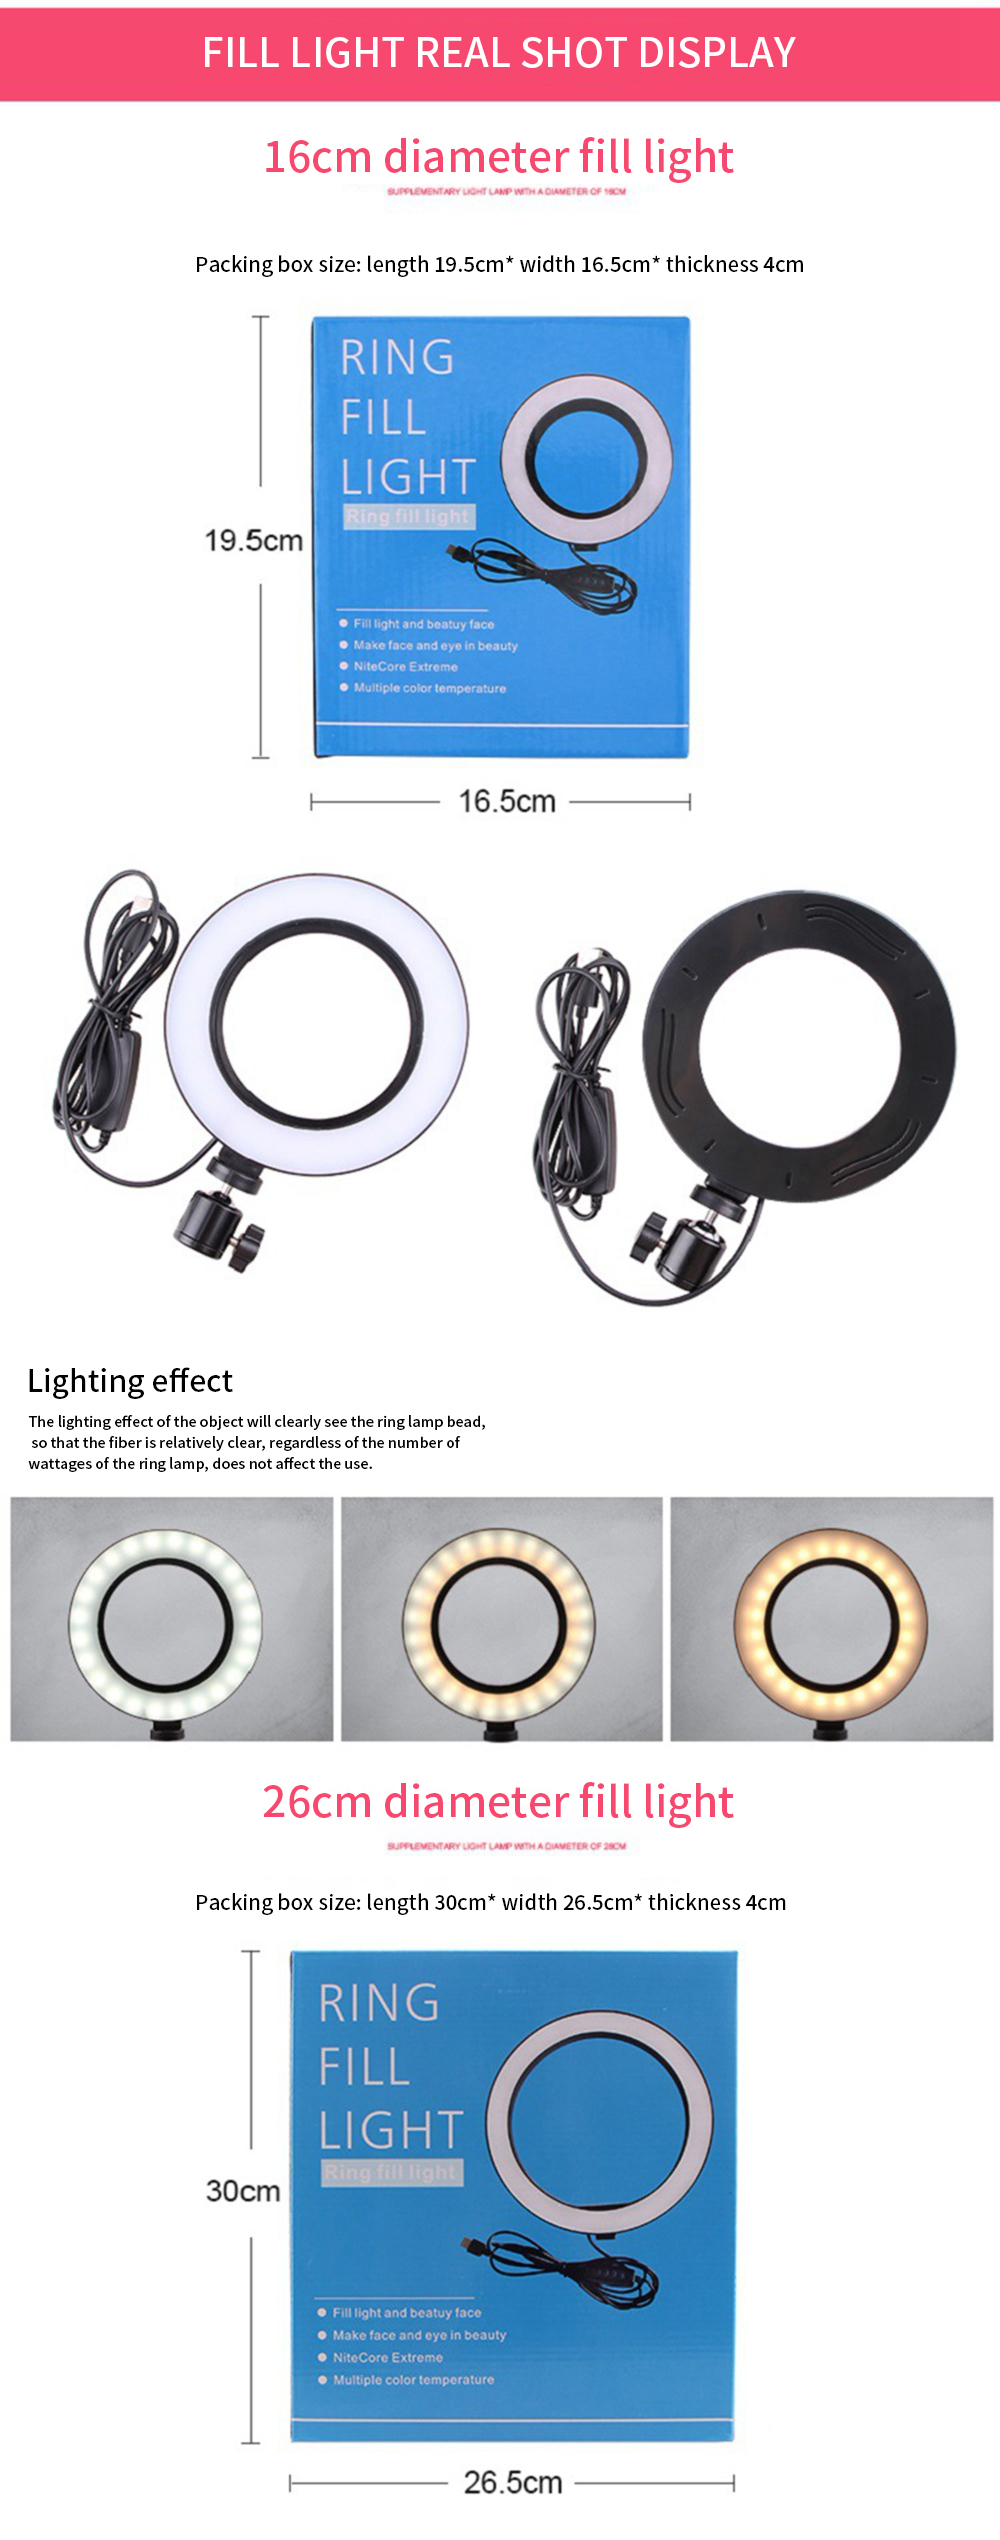 SLM-max LED Floor Ring Fill Light Anchor Beauty Live Mobile Phone Bracket Photography Shooting Professional Makeup-003,A